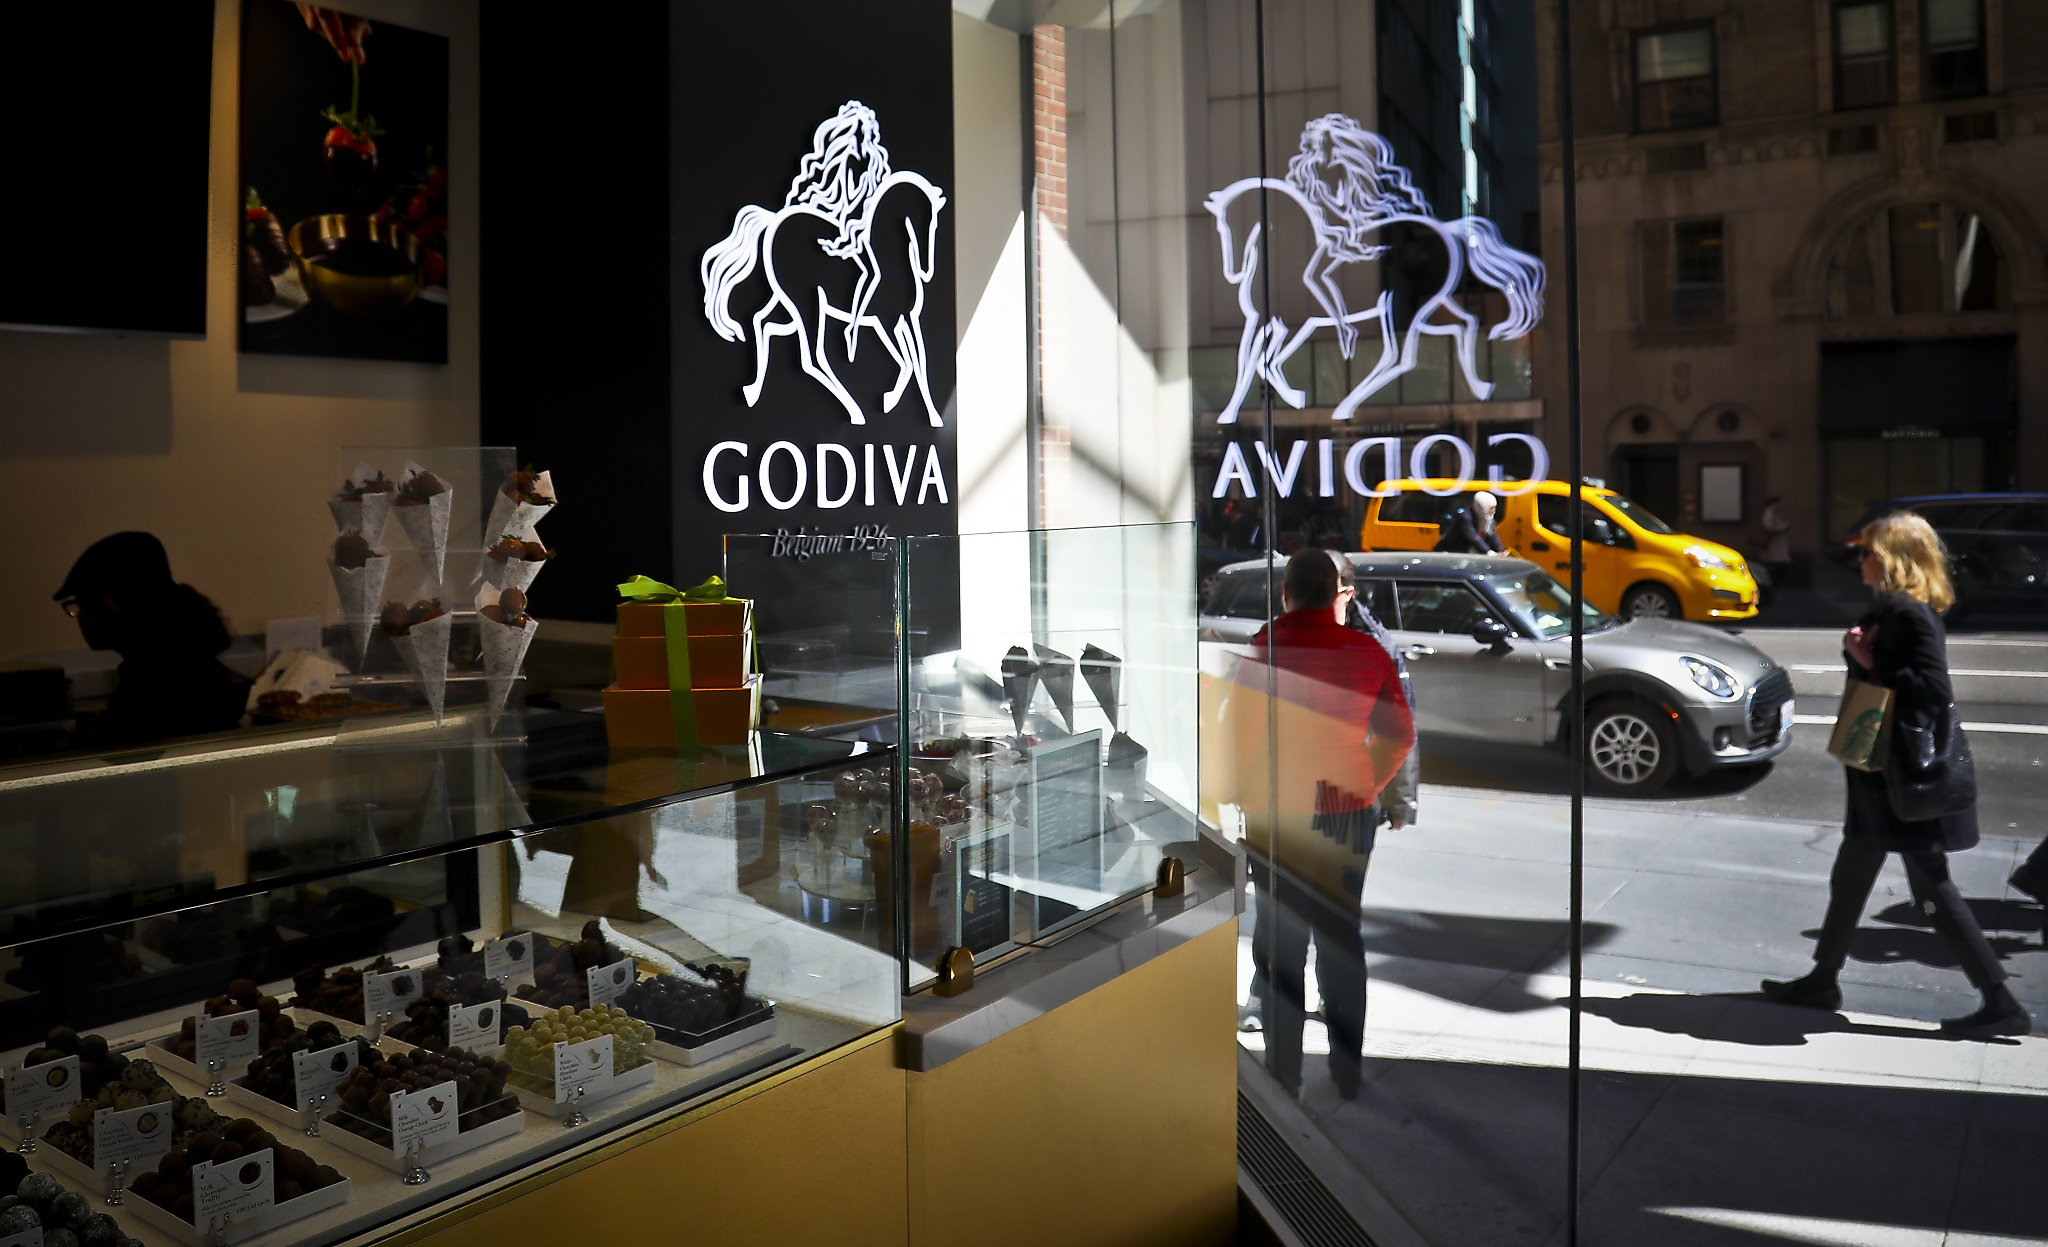 Godiva to close all stores, including seven in Bay Area